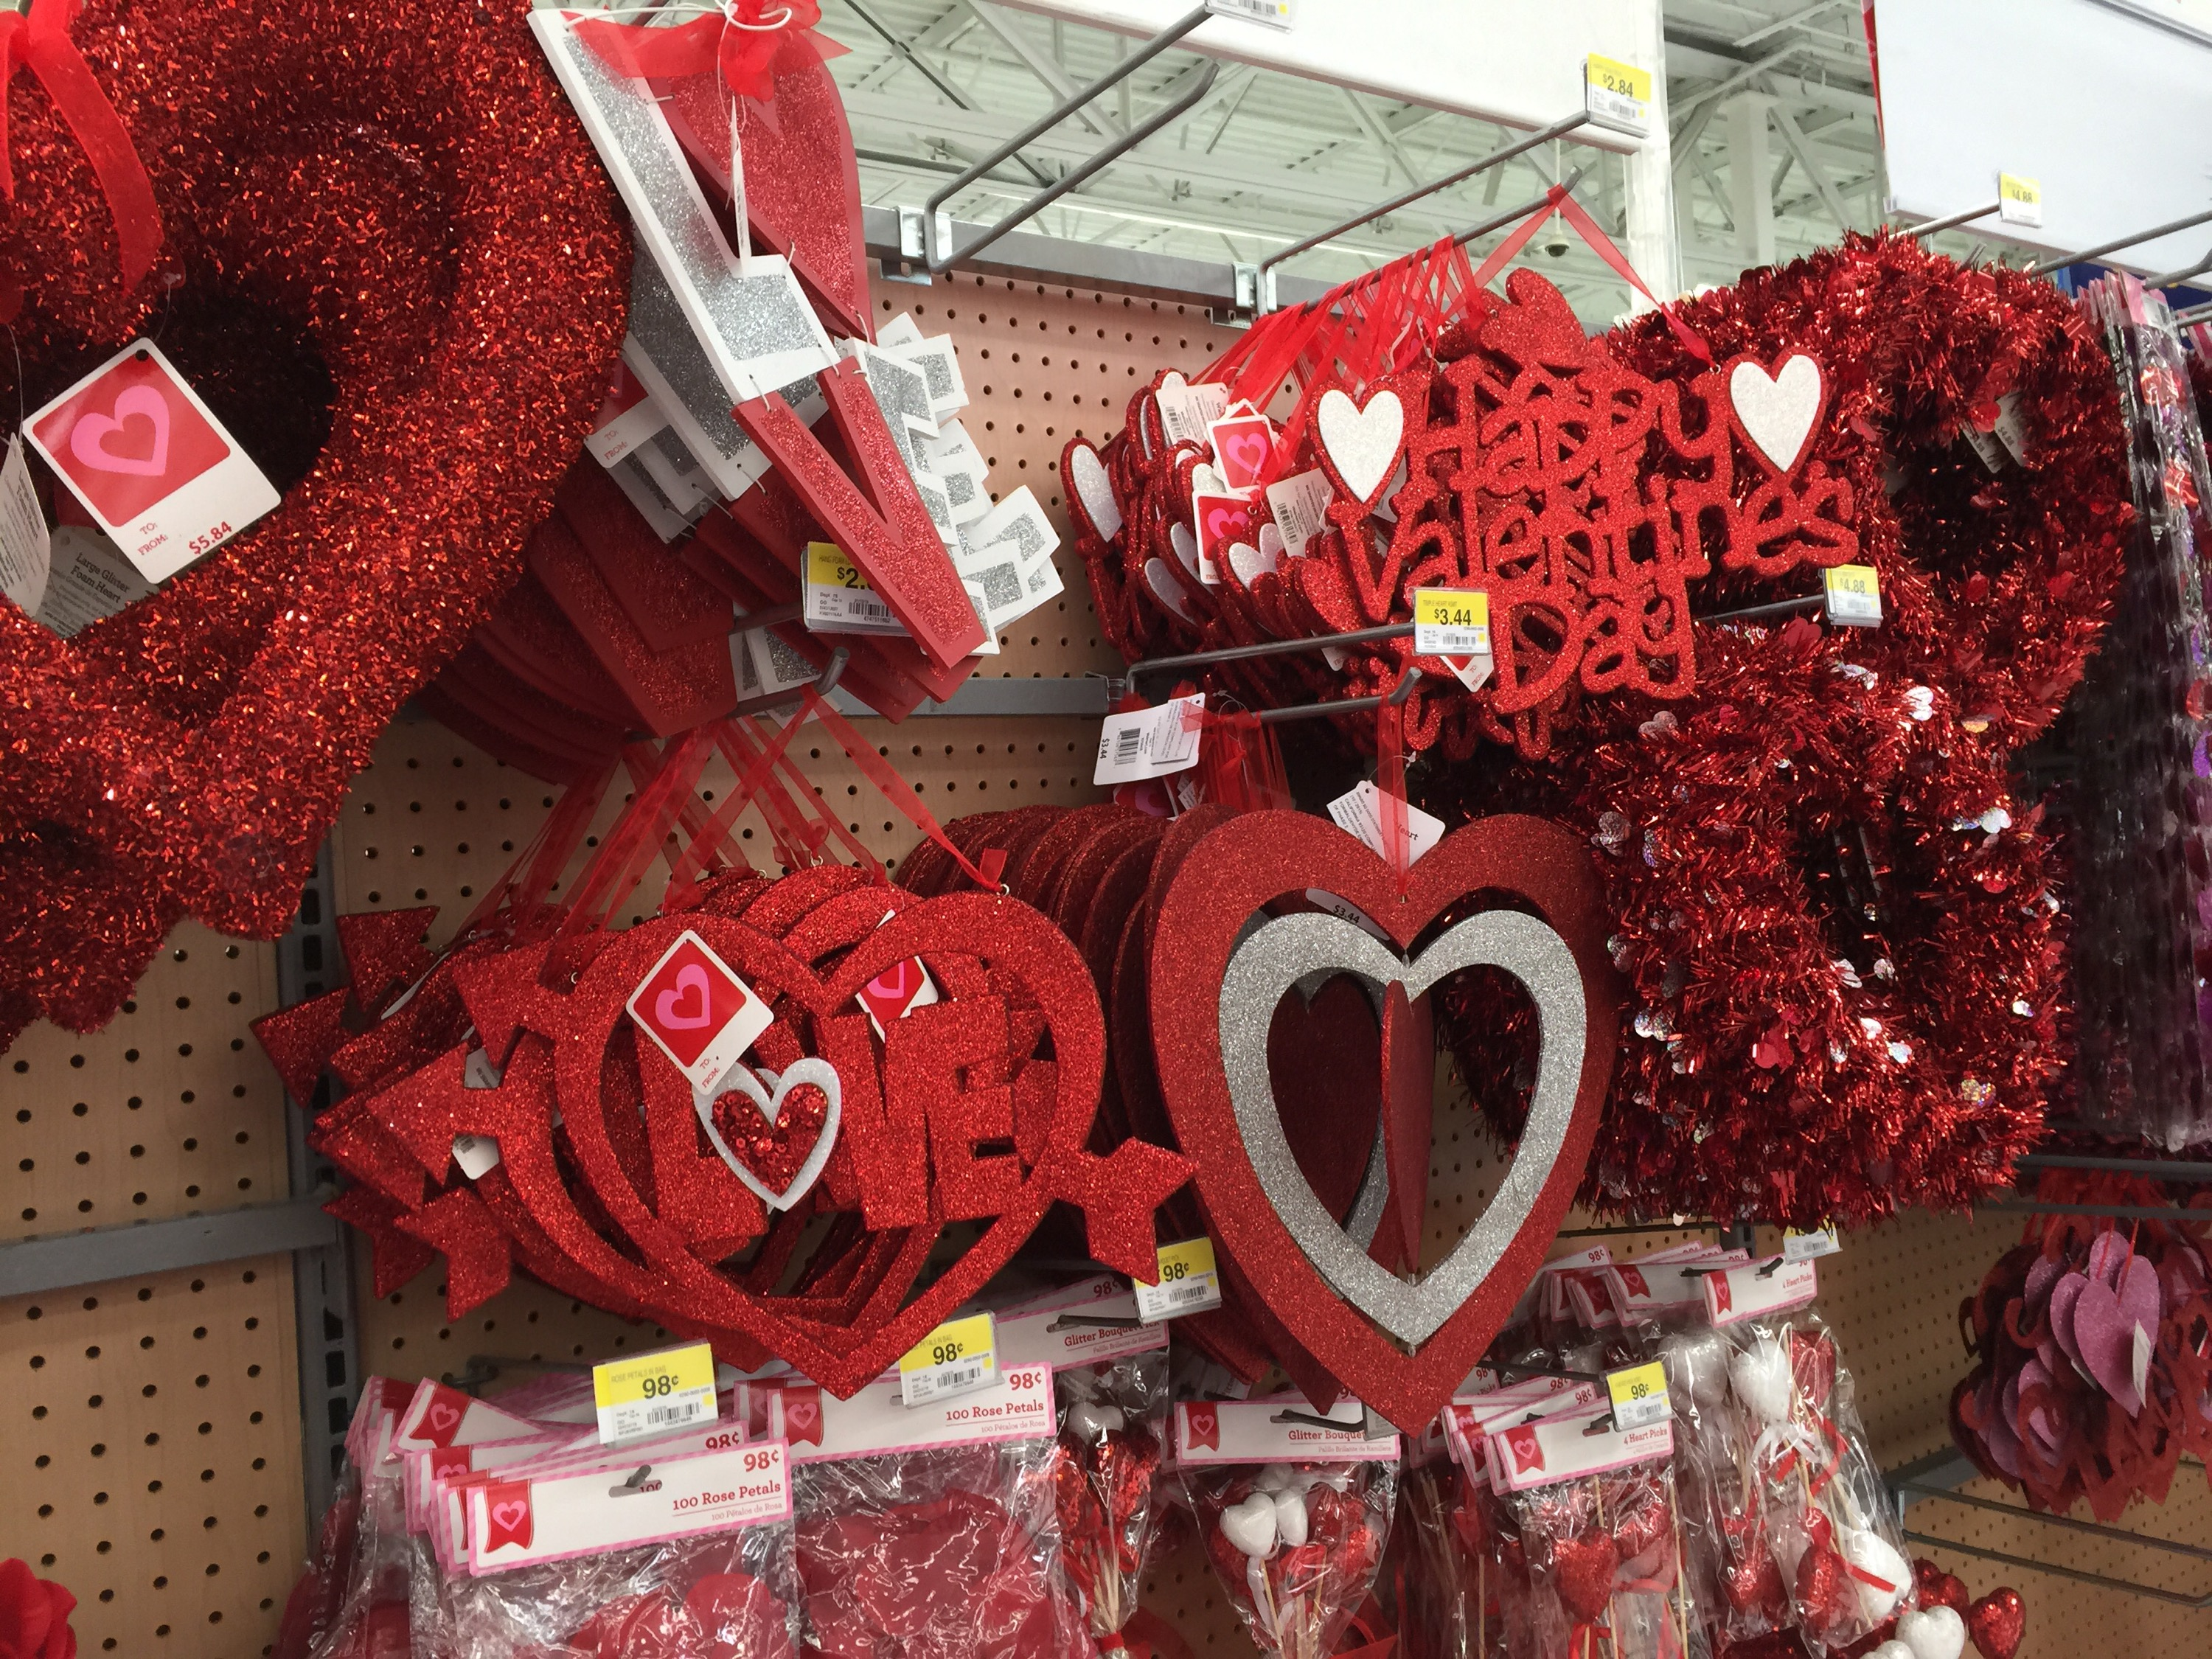 In Store Valentineu0027s Day Aisles Making Finding Party Supplies A Cinch